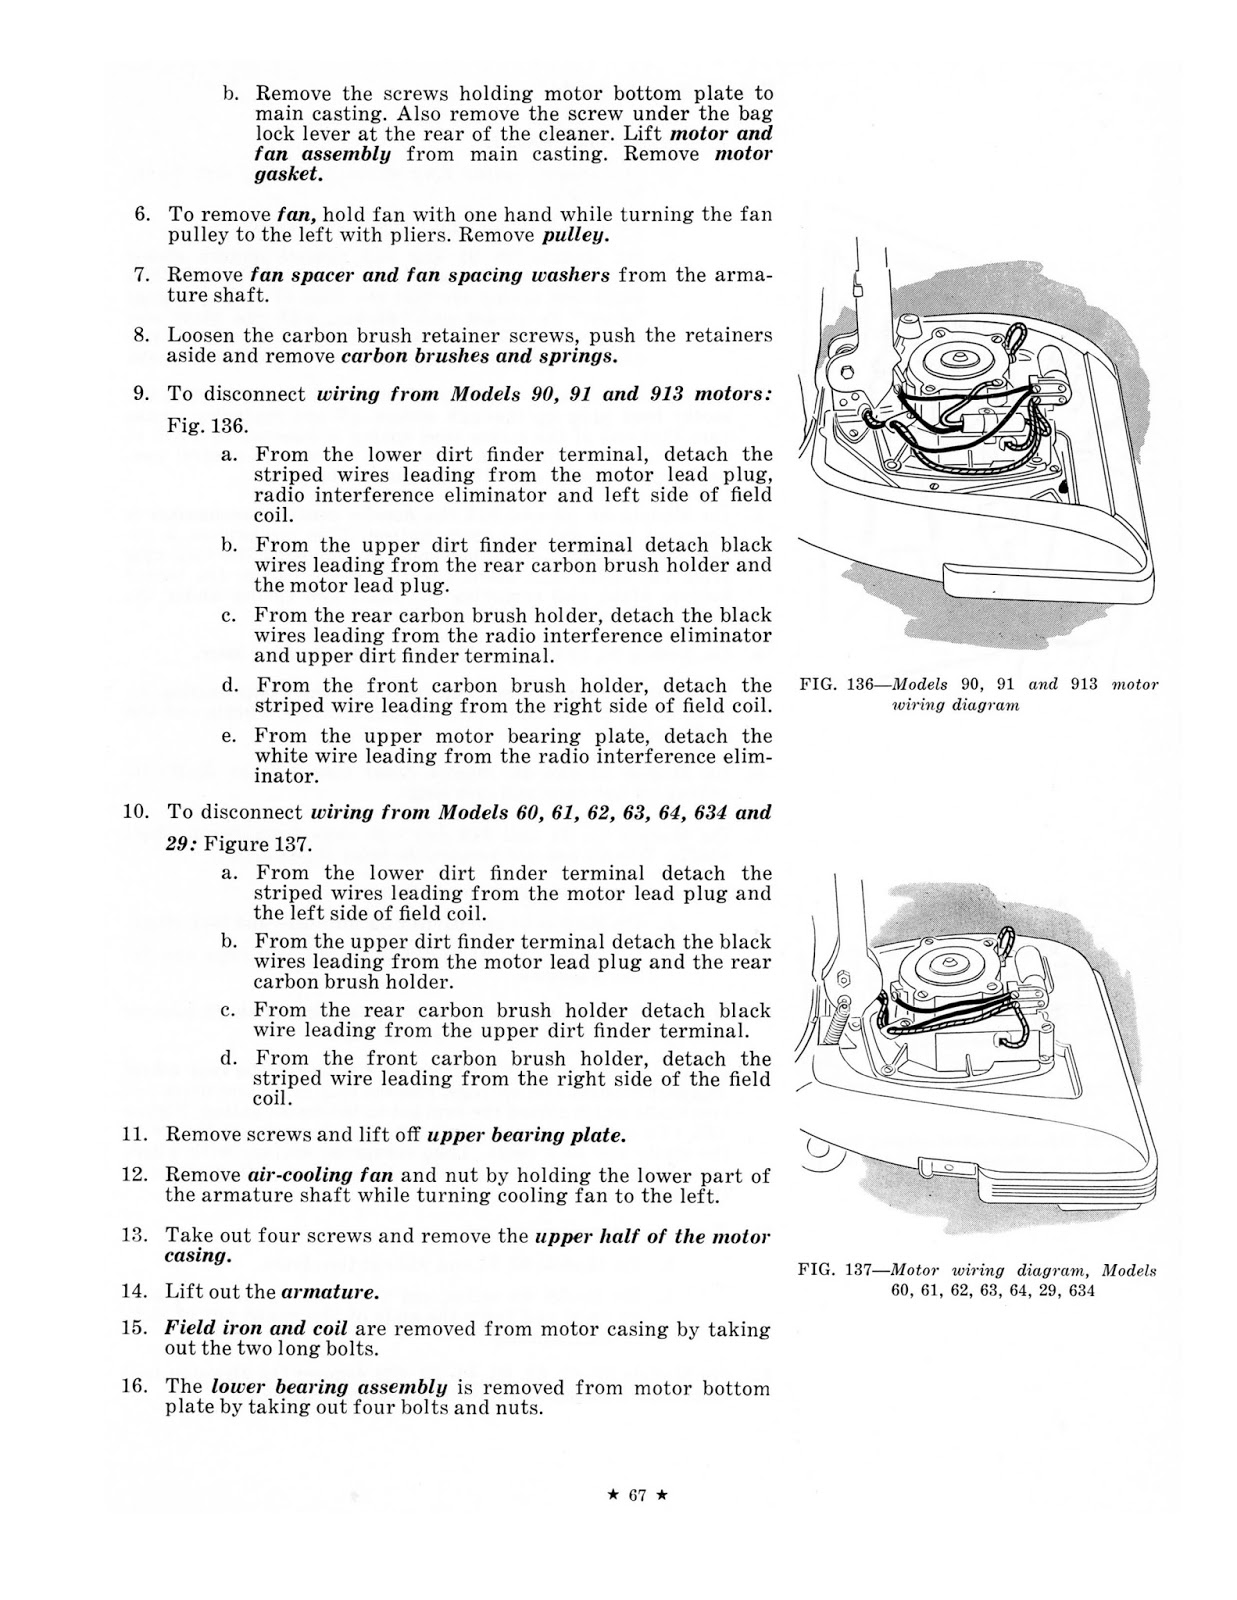 1957 Hoover Us Service Manual Rug Doctor Wiring Diagram